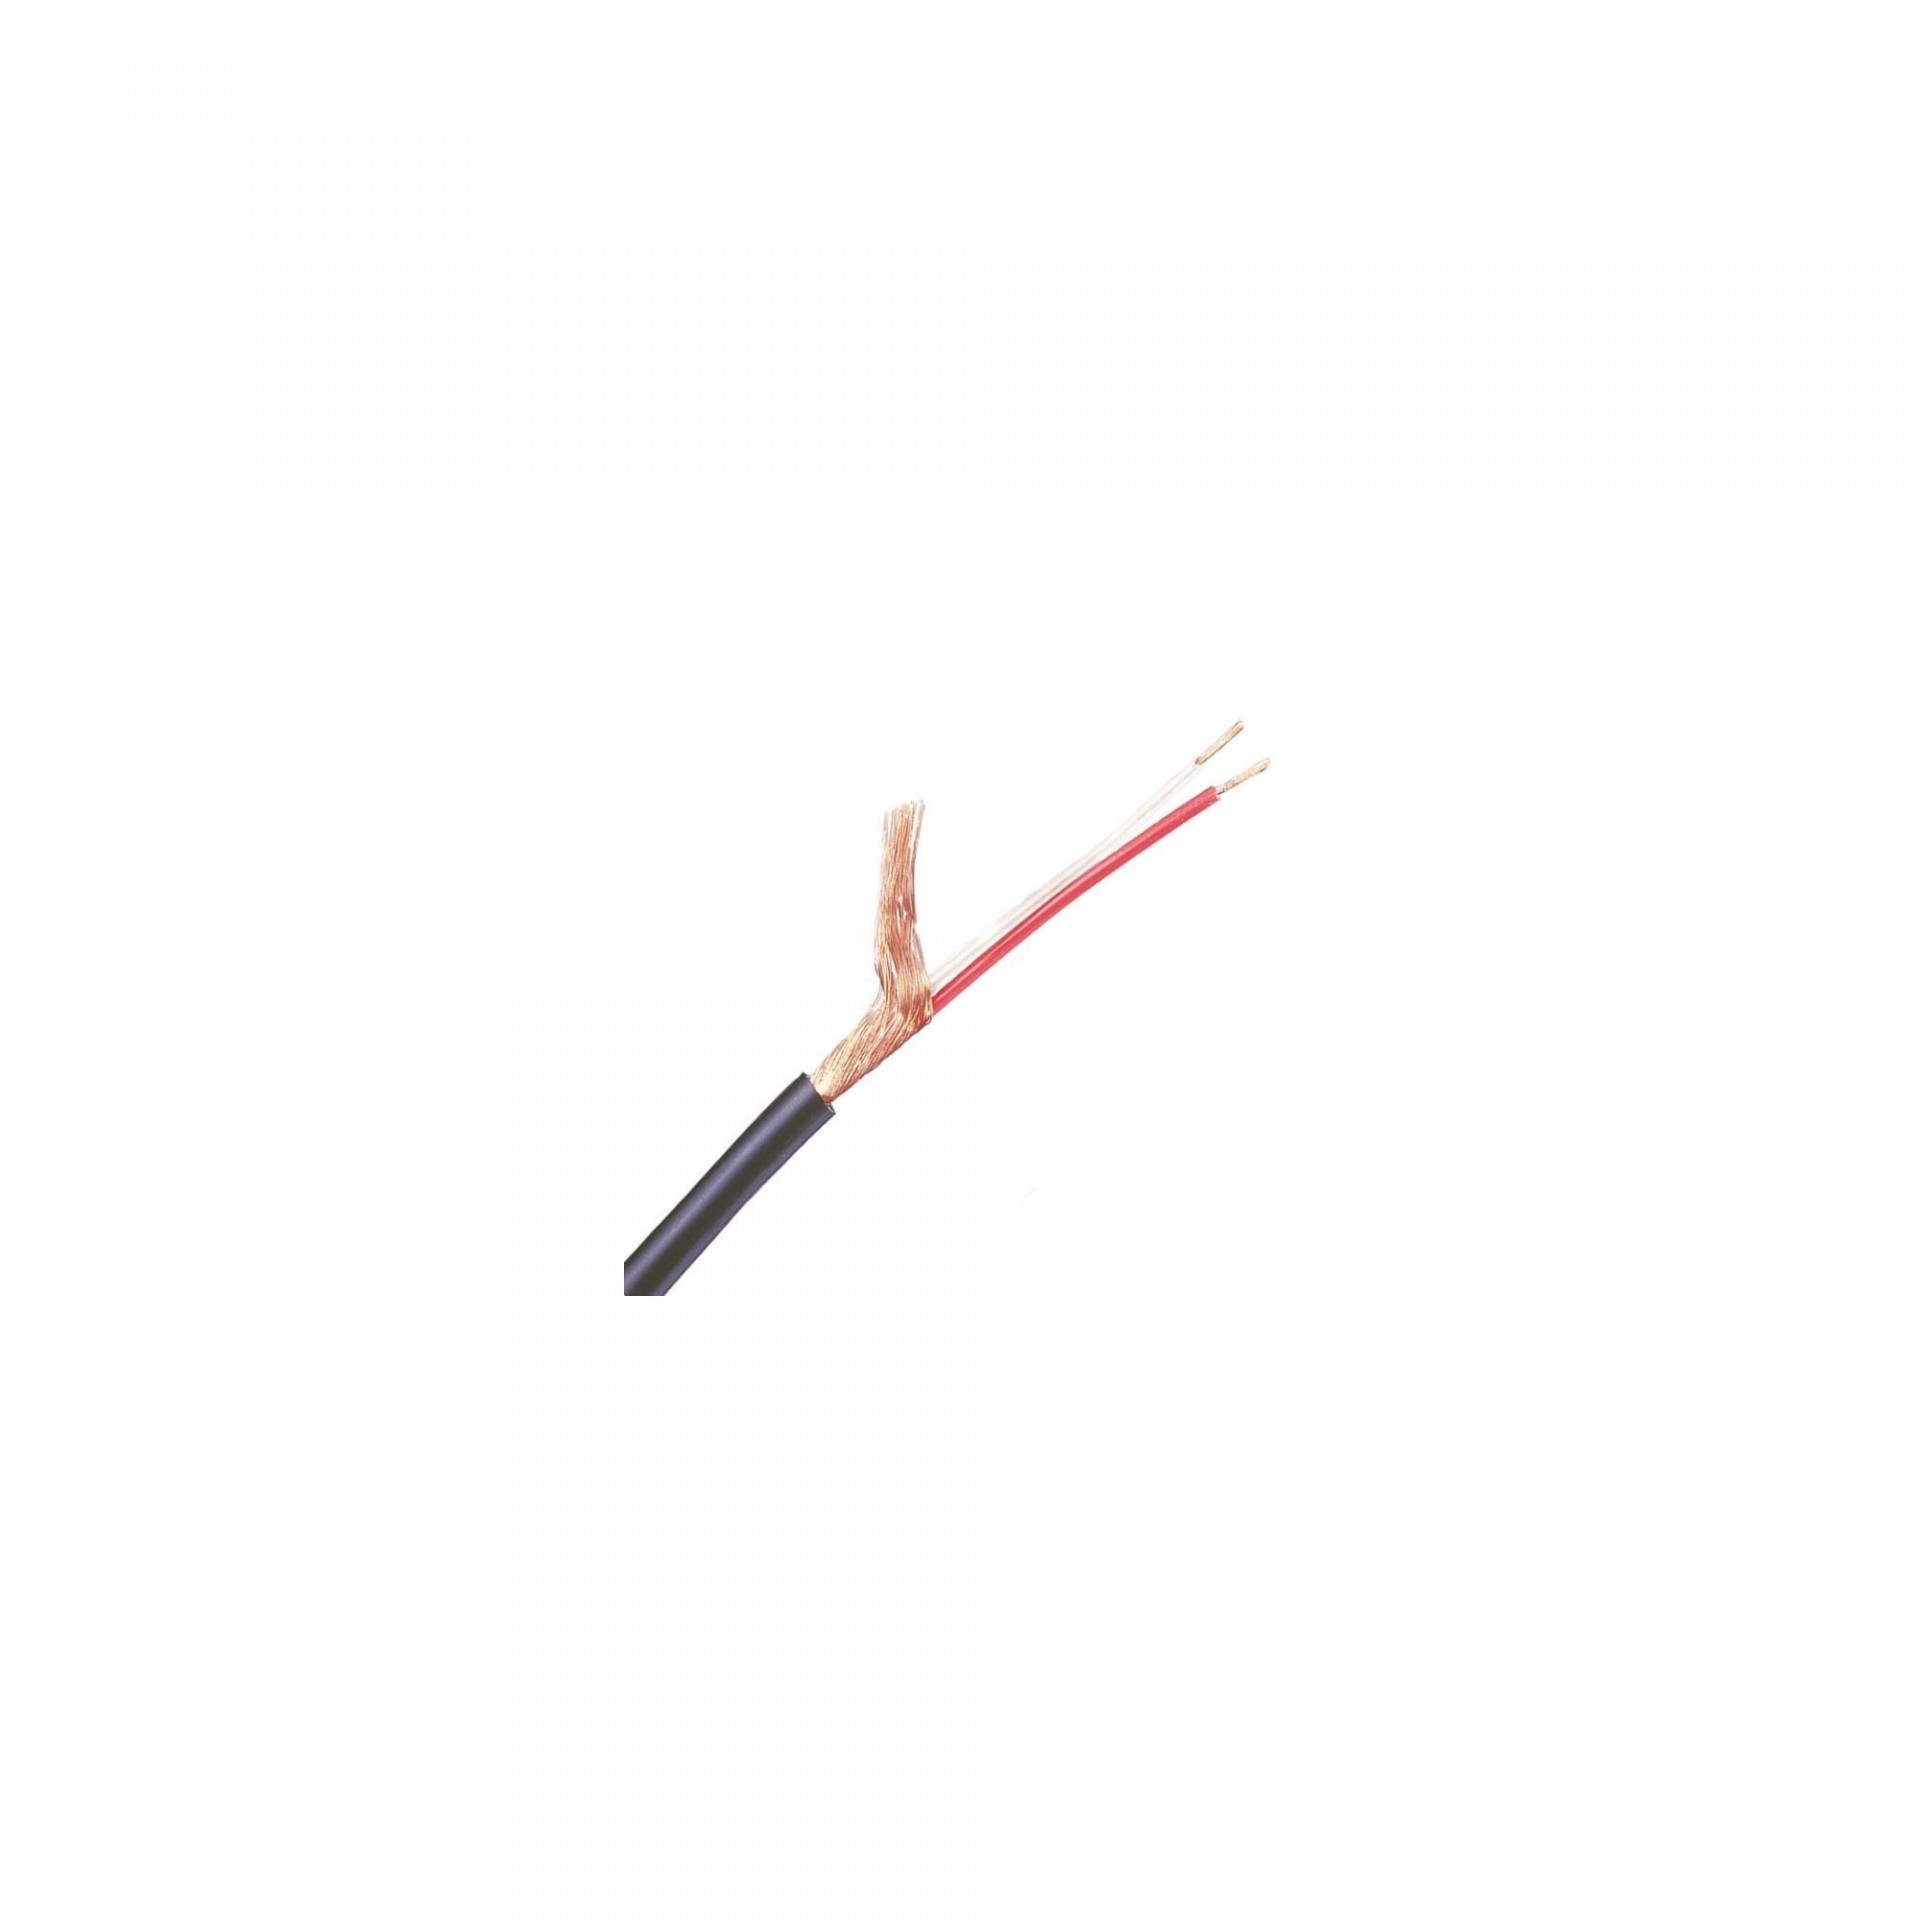 Mogami 2552 Microphone cable